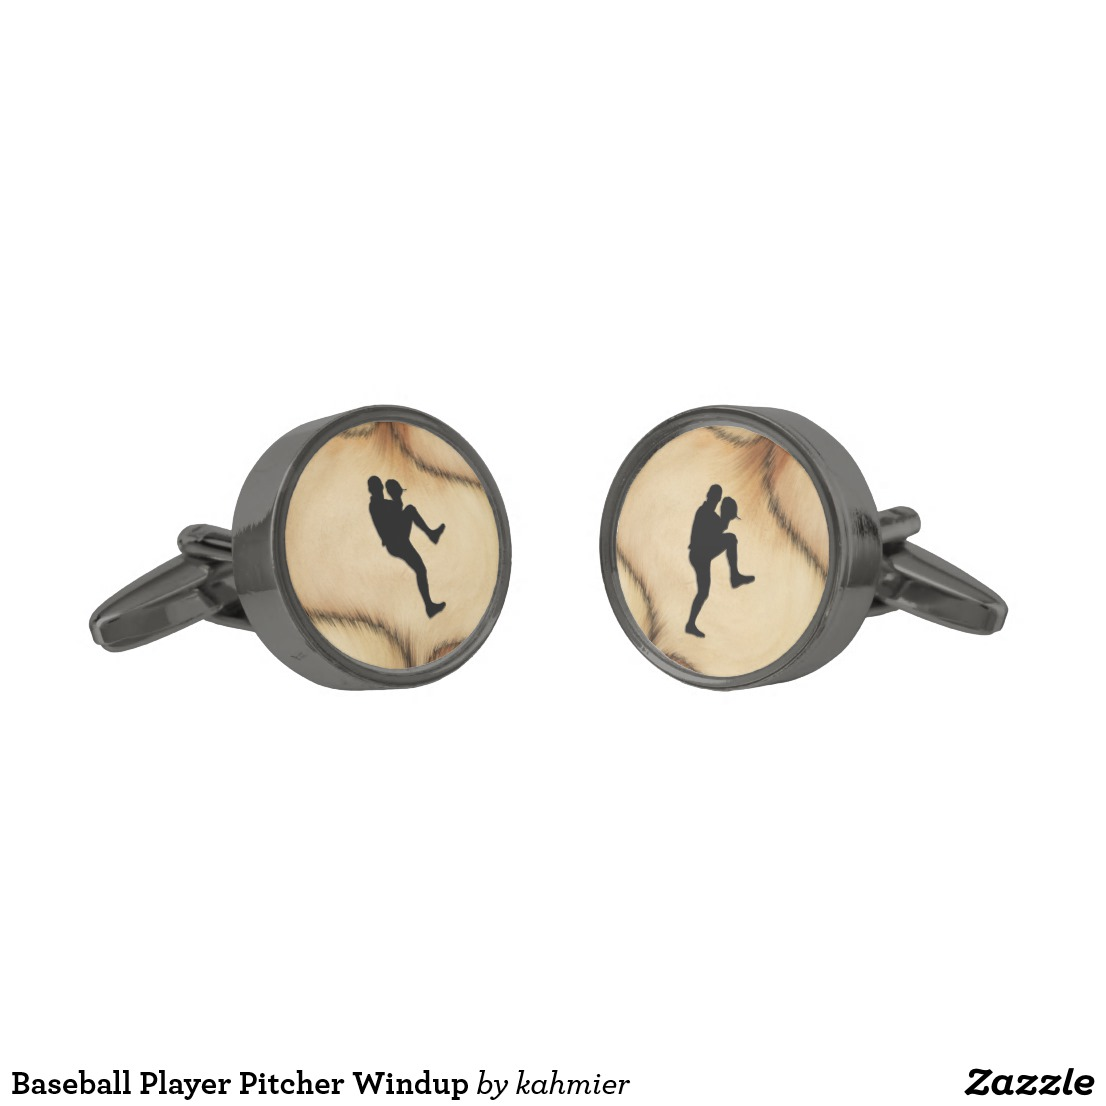 Baseball Player Pitcher Windup Cufflinks